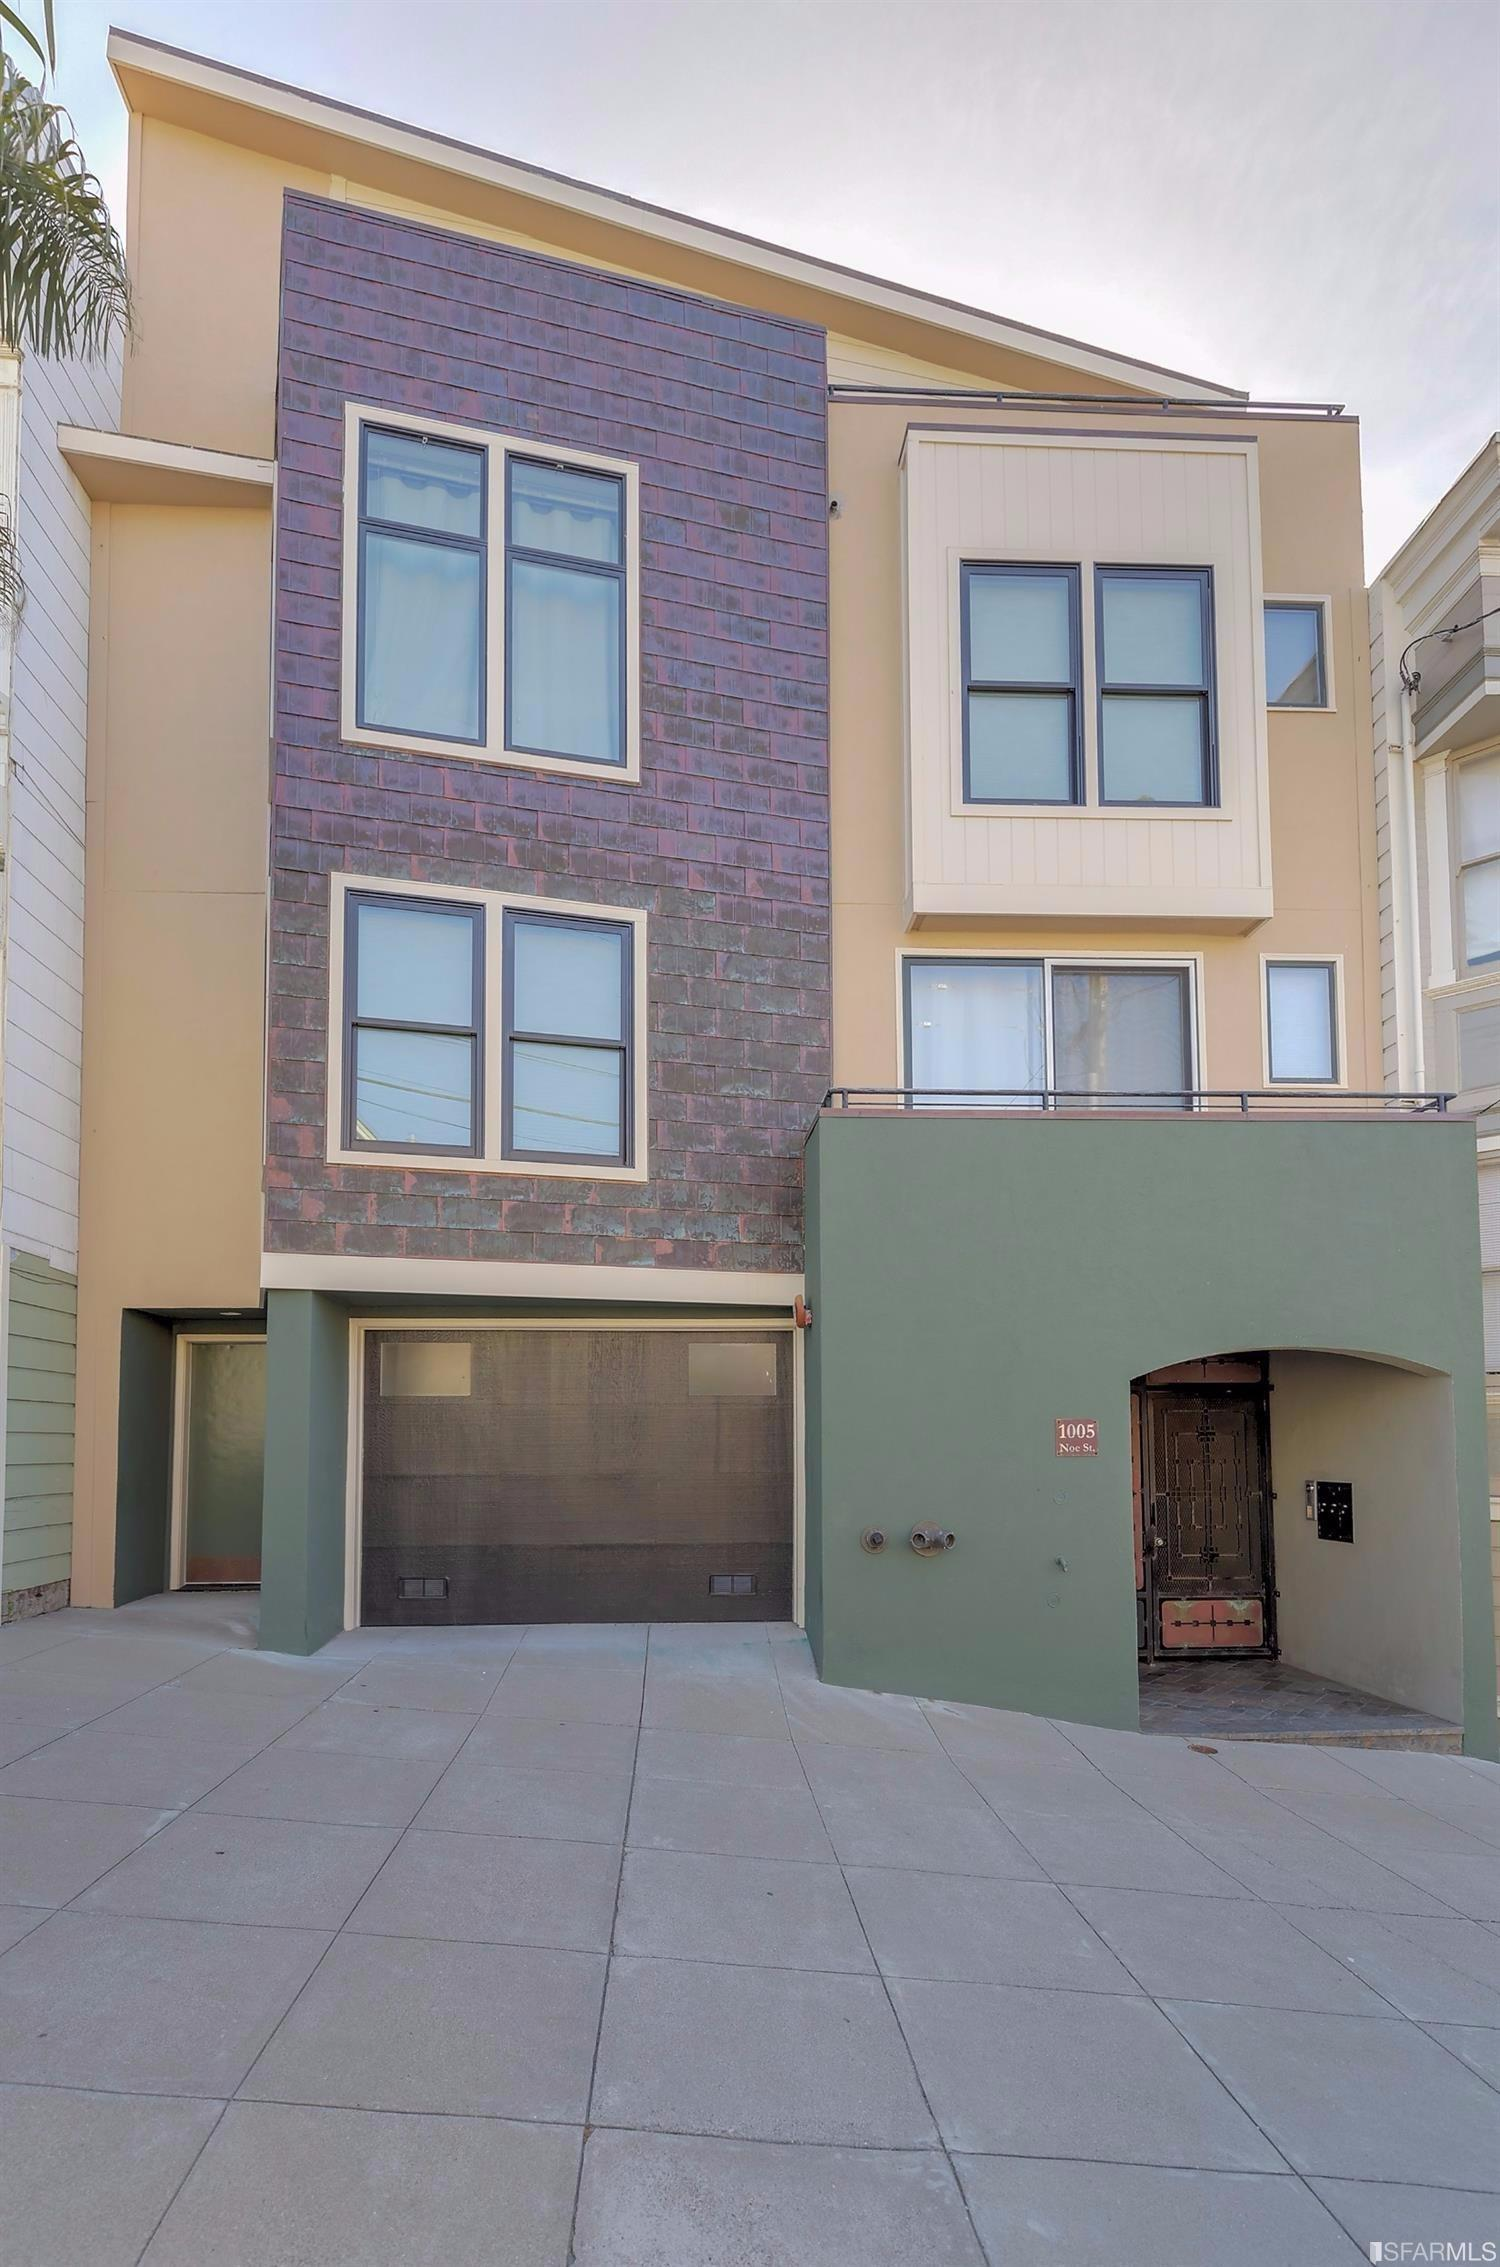 Other for Sale at 1005 Noe Street Unit 2 SAN FRANCISCO, CALIFORNIA 94114